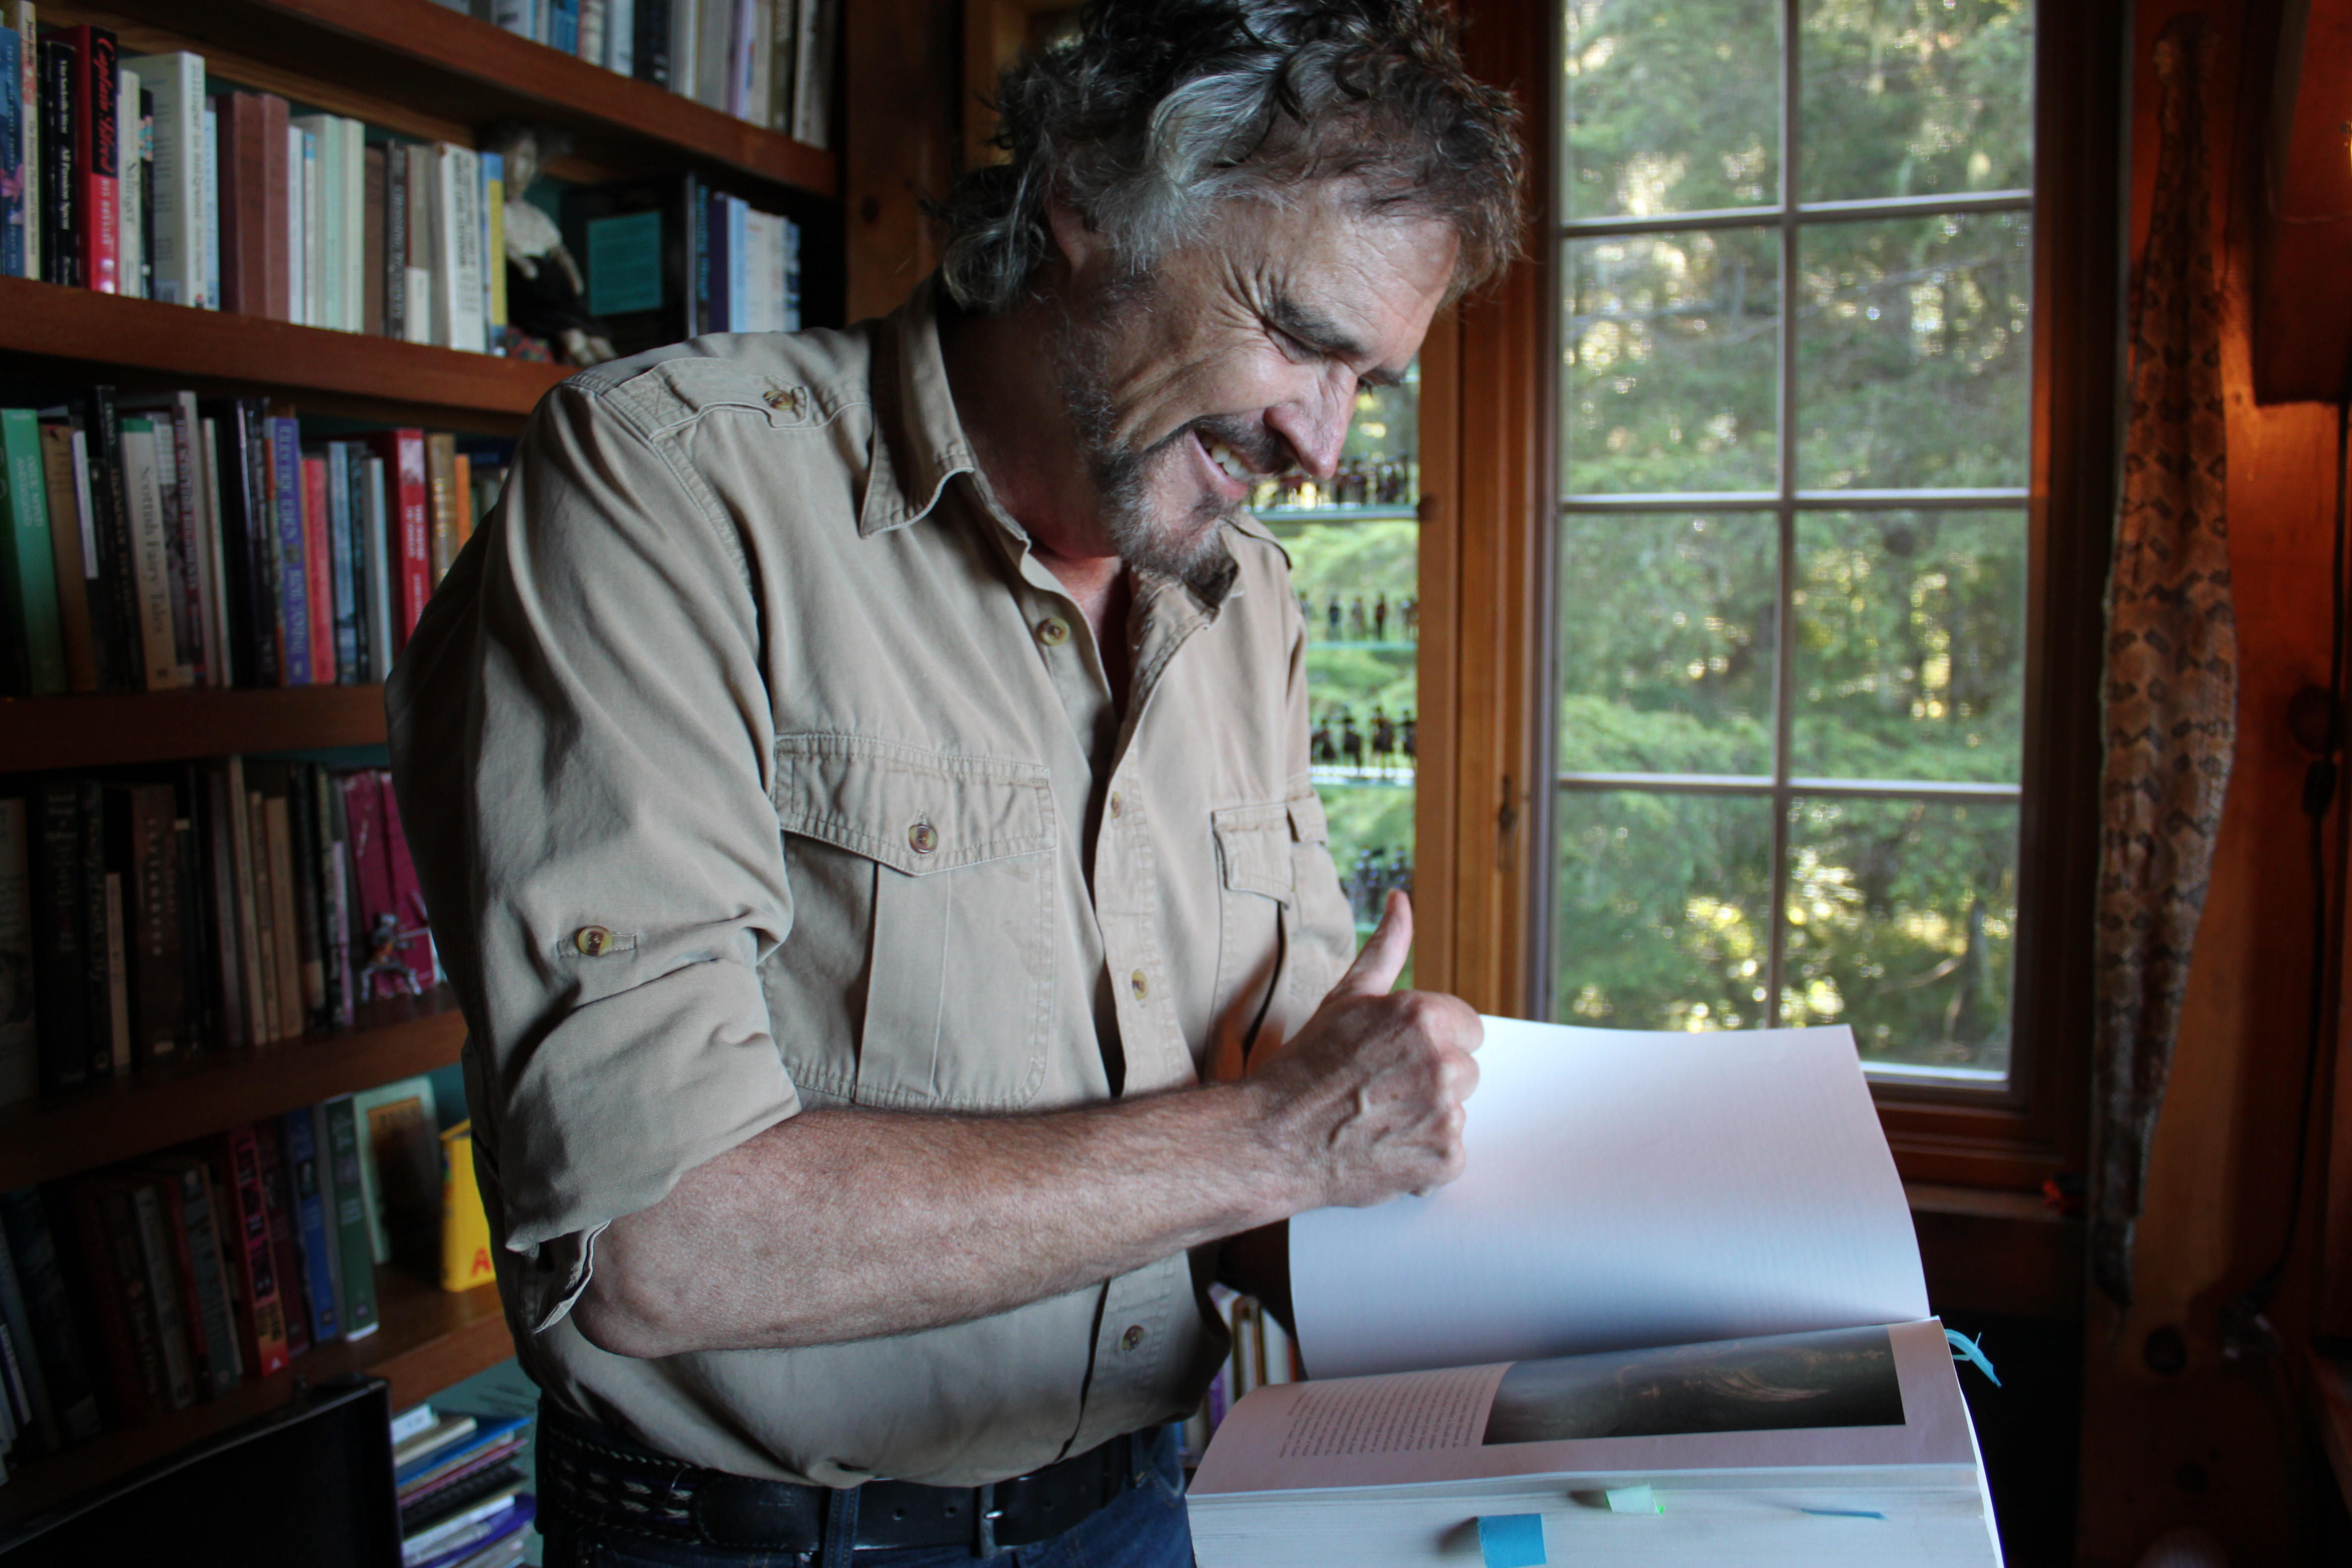 """At home a day after Dick Dauenhauer died, Juneau playwright Dave Hunsaker flips through his copy of """"Anóoshi Lingít Aaní Ká/Russians in Tlingit America: The Battles of Sitka, 1802 and 1804."""" (Photo by Lisa Phu/KTOO)"""